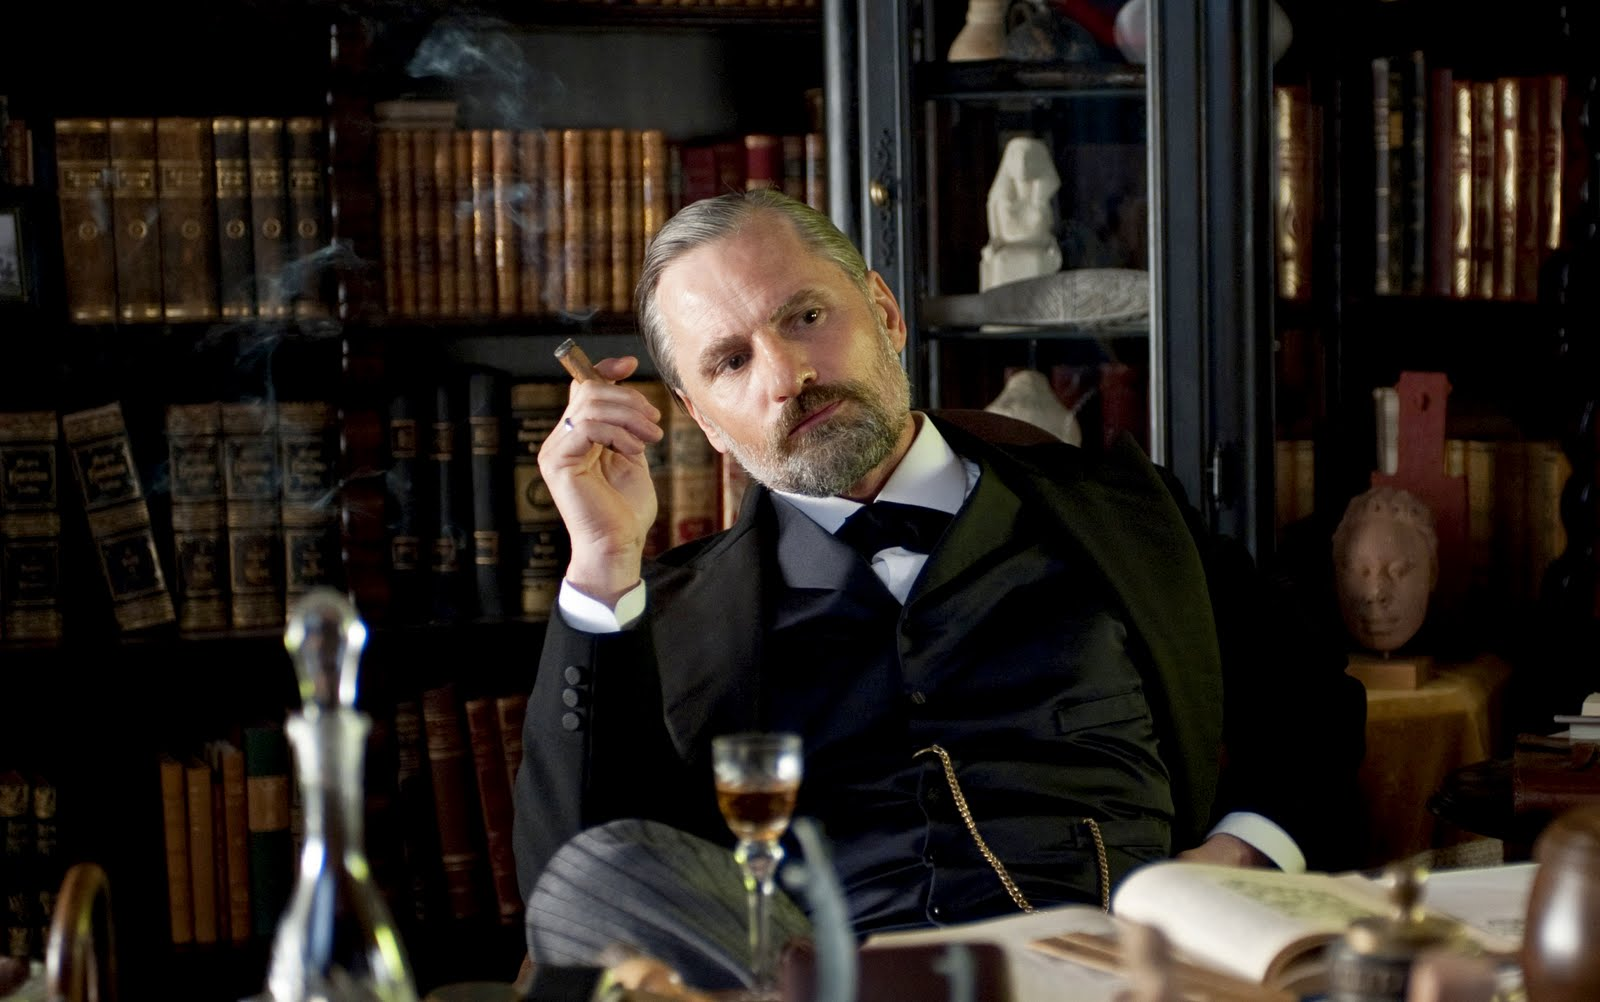 http://2.bp.blogspot.com/-KNEZH2d2dtQ/TshGK8pc_fI/AAAAAAAAB5I/Jy2rZx0xMbw/s1600/a-dangerous-method-movie-image-viggo-mortensen-05.jpg